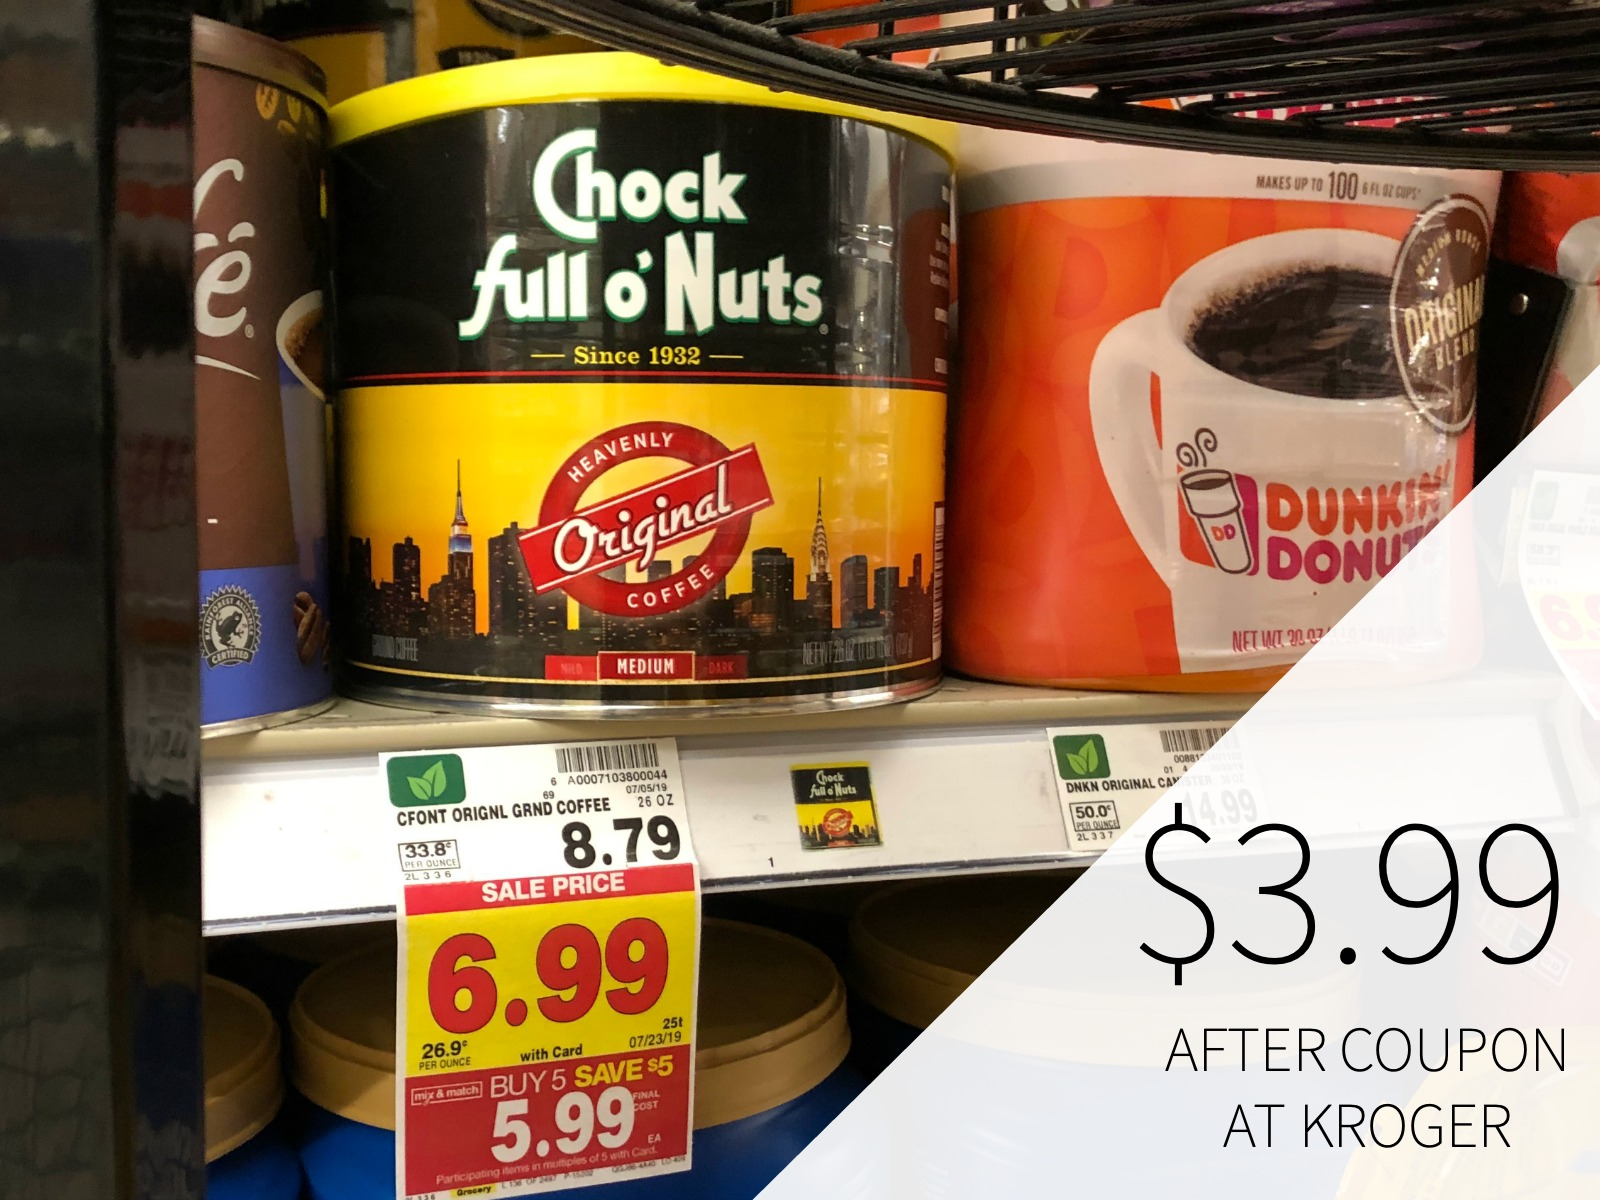 Chock Full O' Nuts Coffee Just $2.99 At Kroger (Today Only)